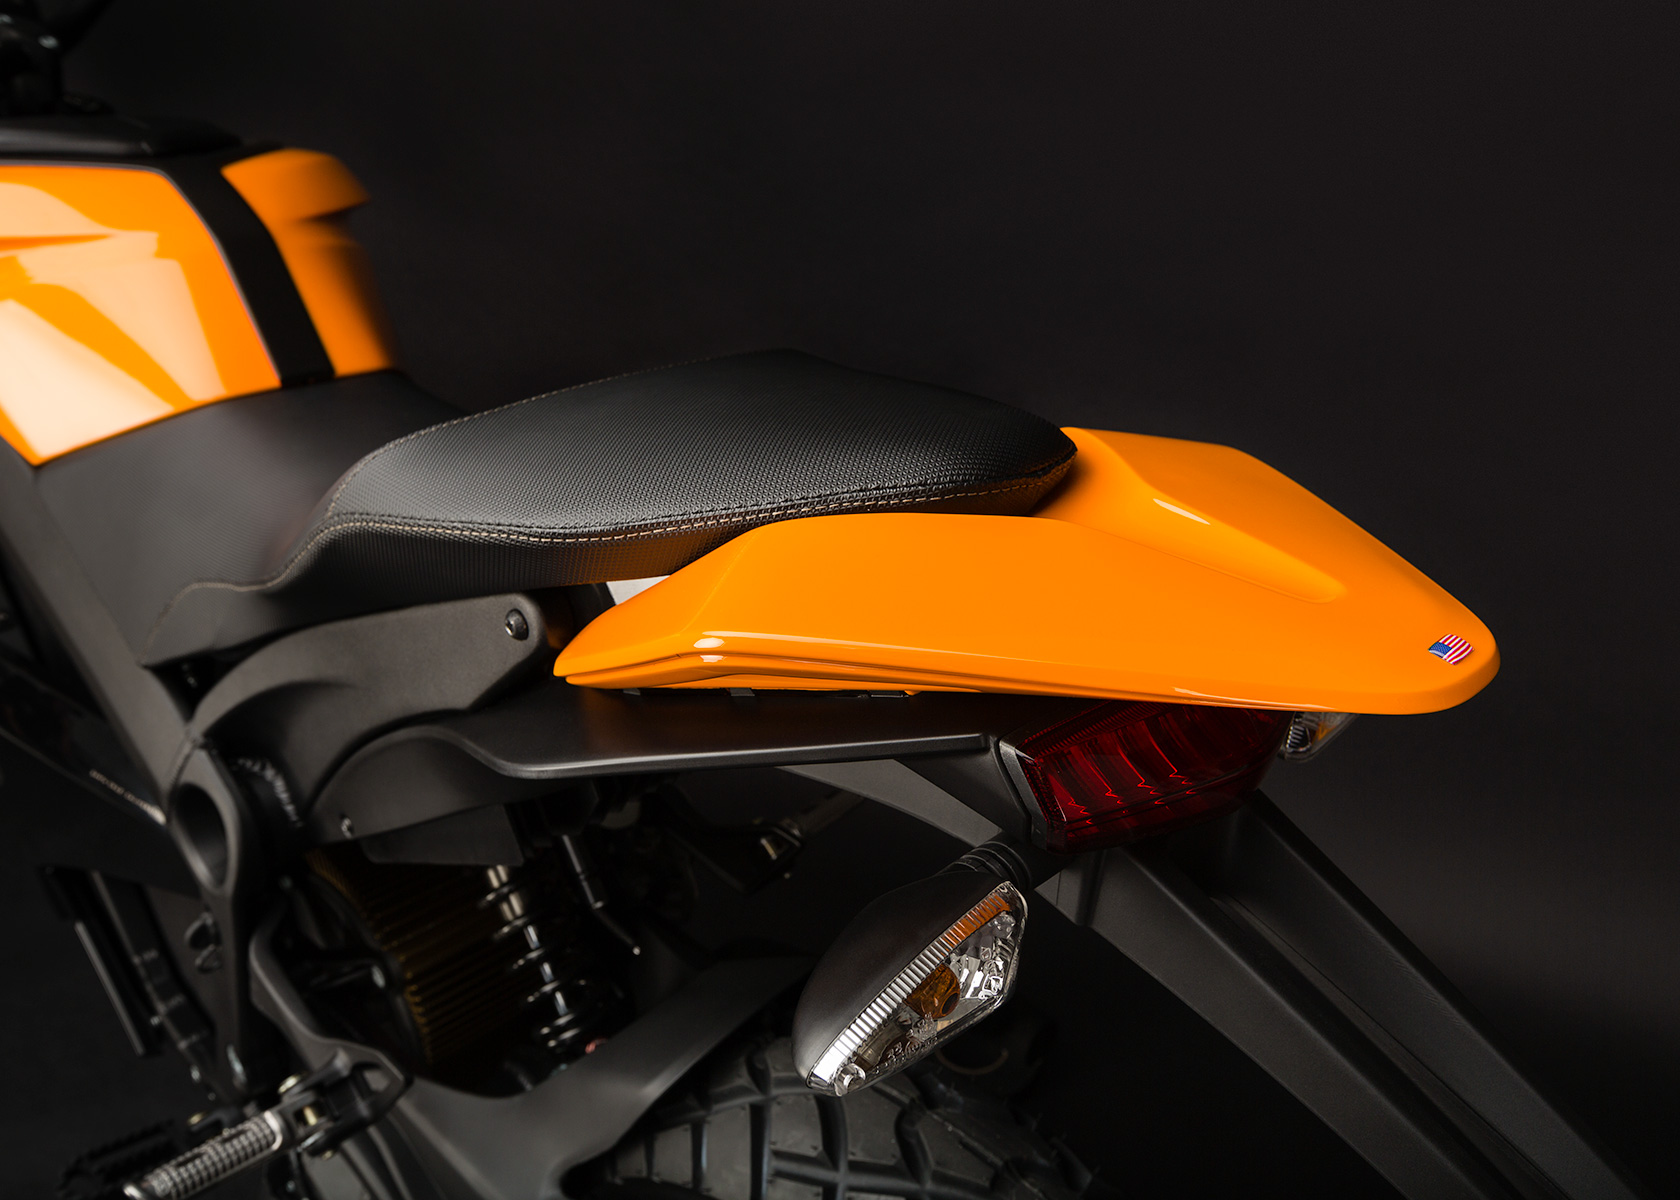 2013 Zero DS Electric Motorcycle: Tail